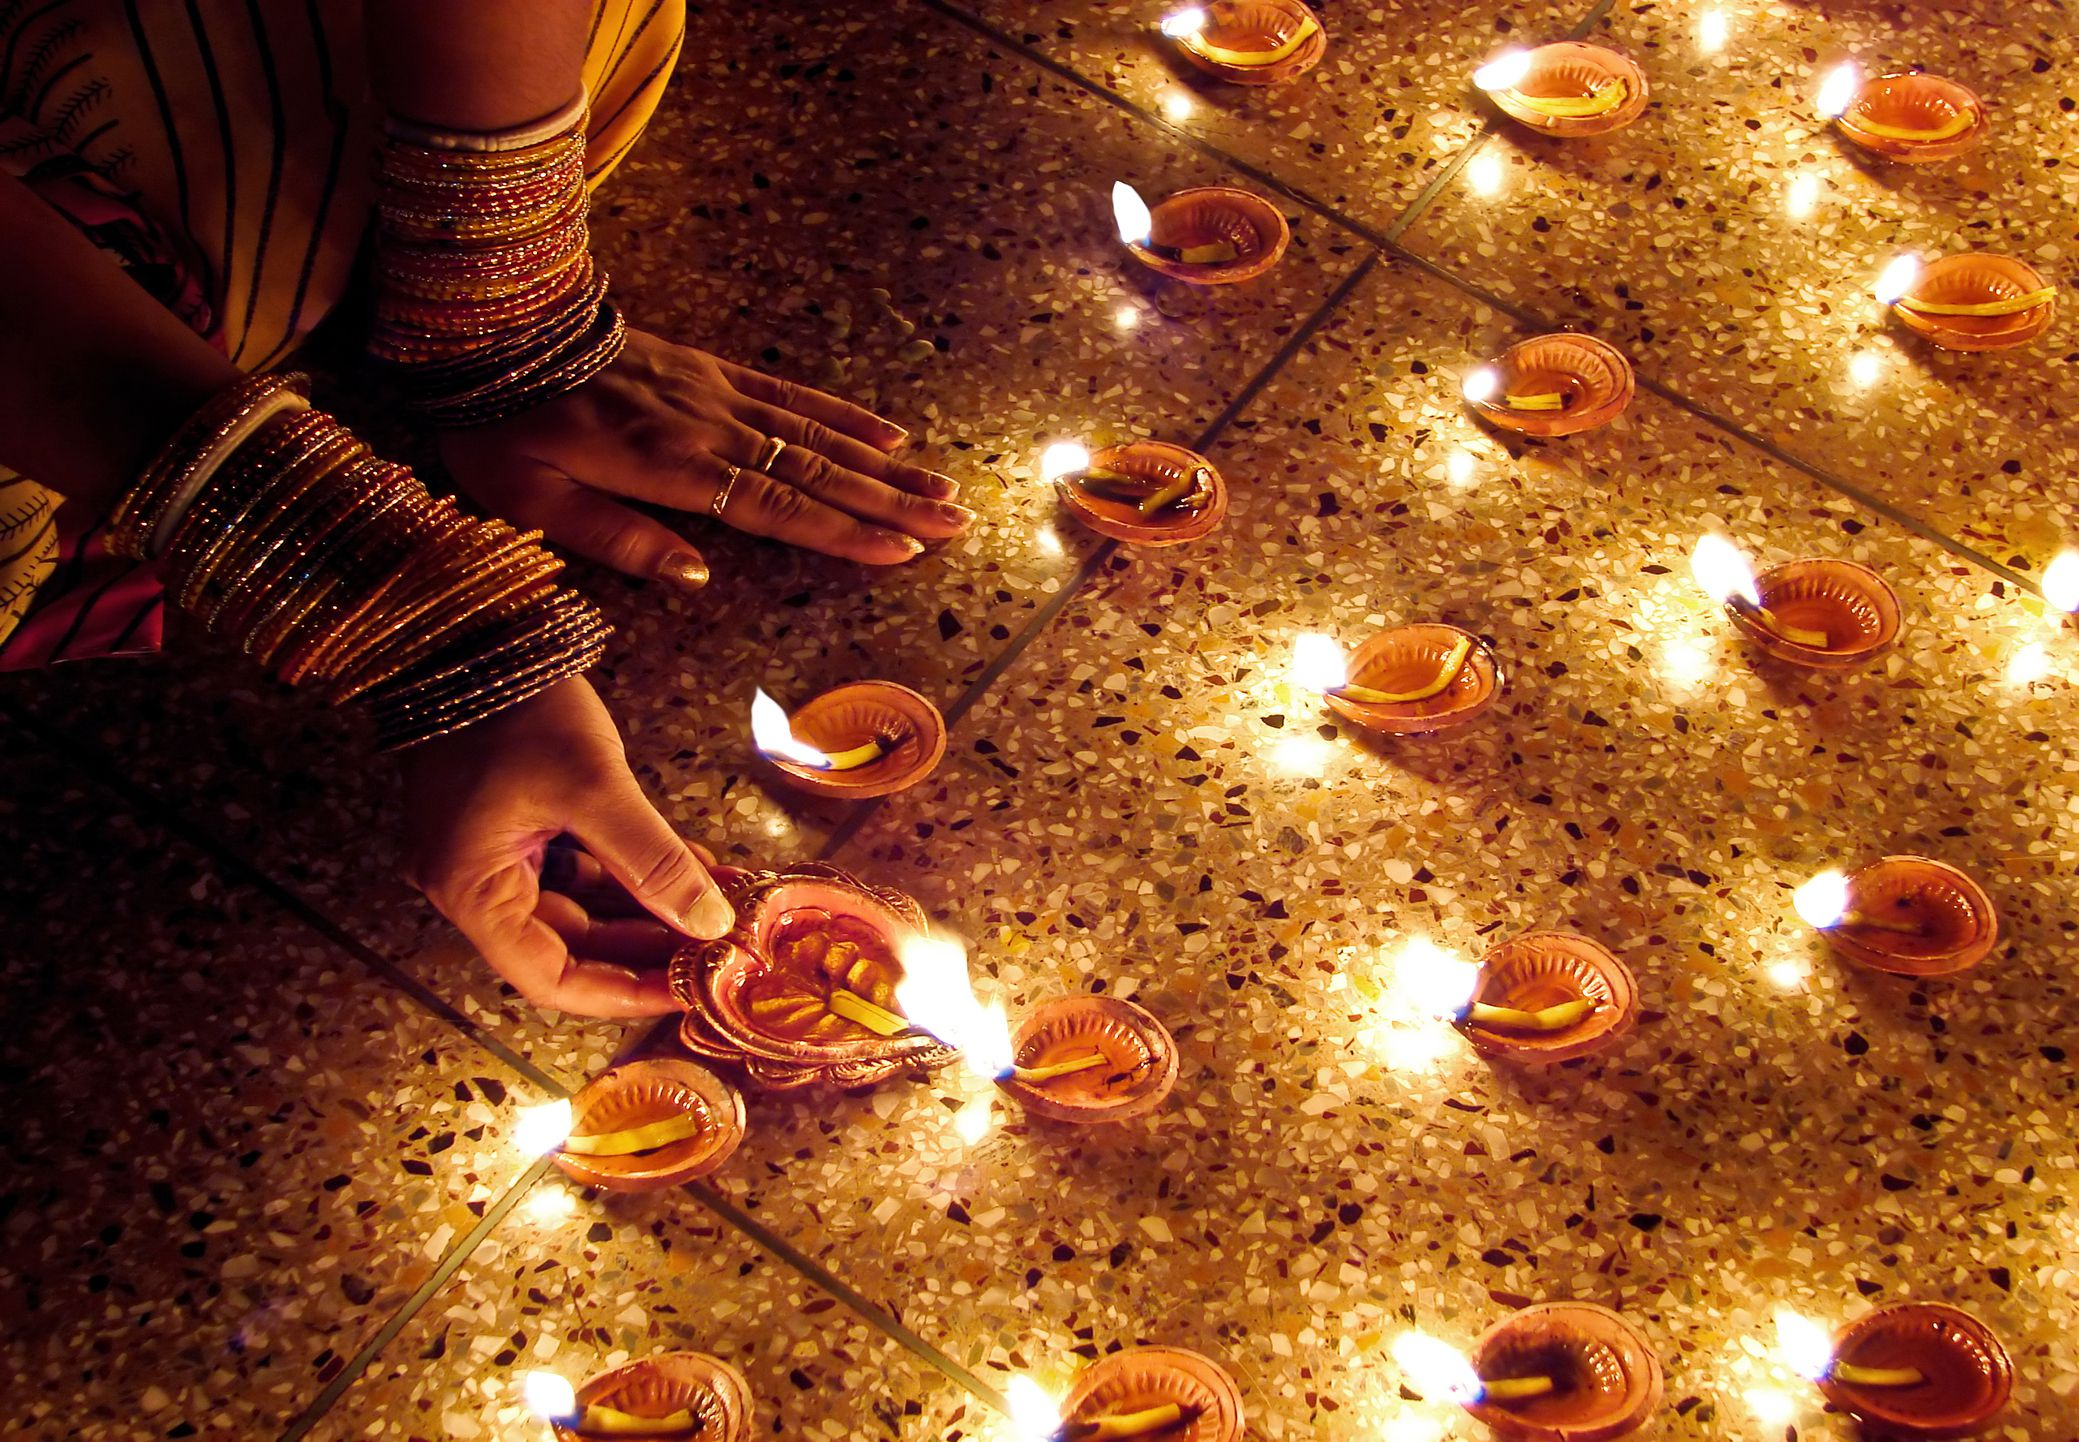 photo gallery 13 captivating pictures of diwali in india